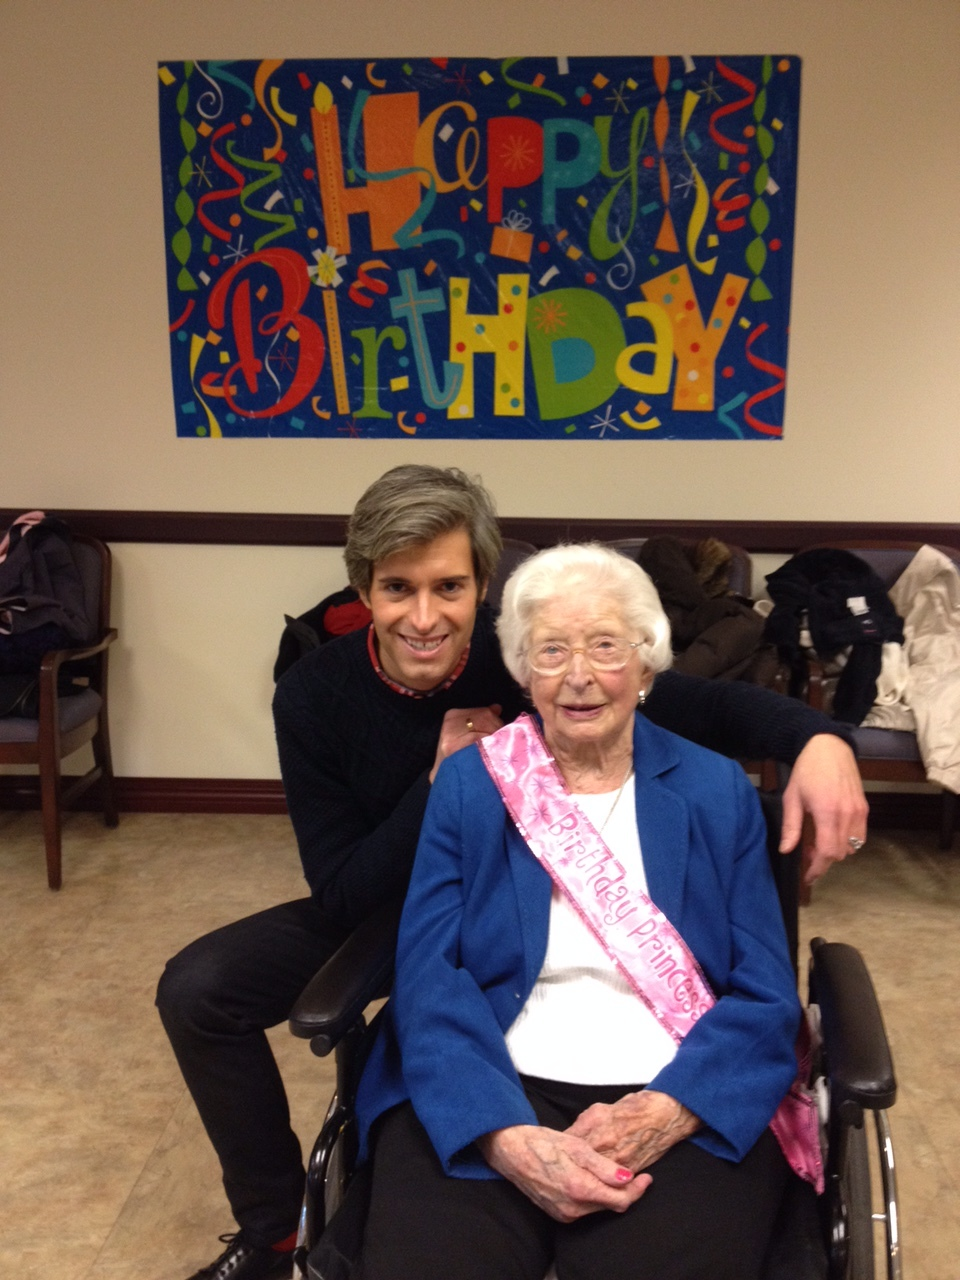 Me & Grandma Mable at her 99th Birthday on December 6th, 2014 (3 weeks before she passed)